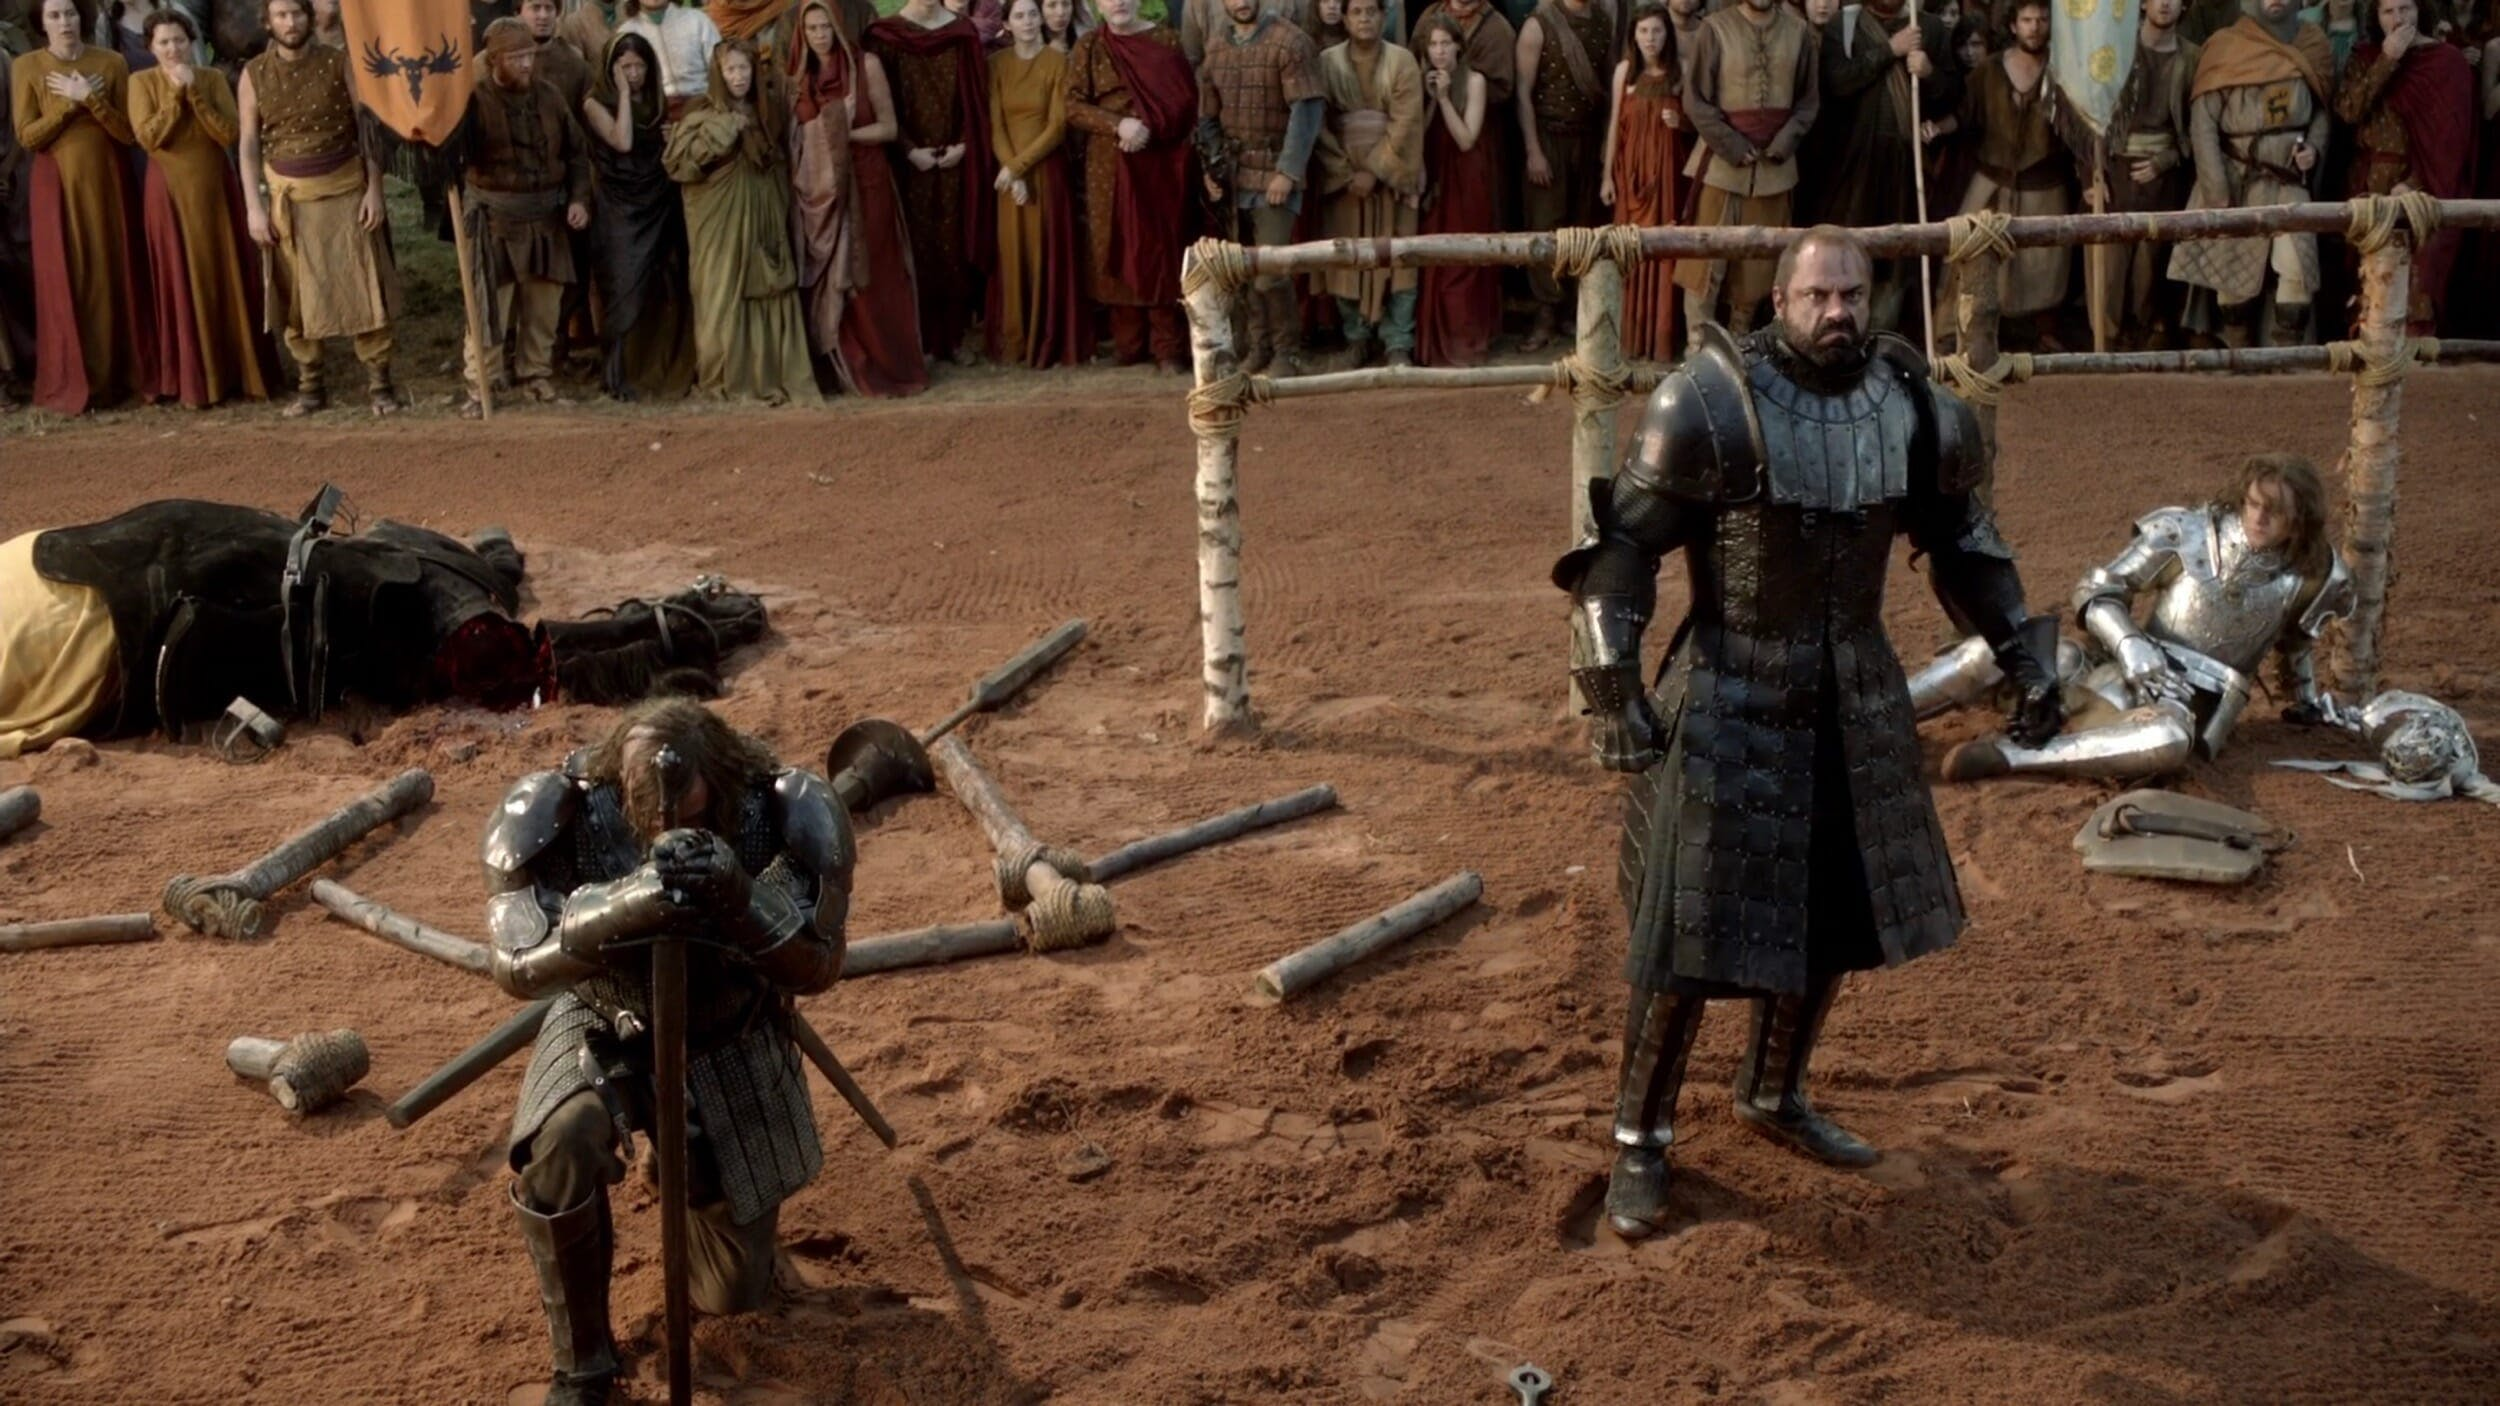 game of thrones cleganebowl hound mountain fight